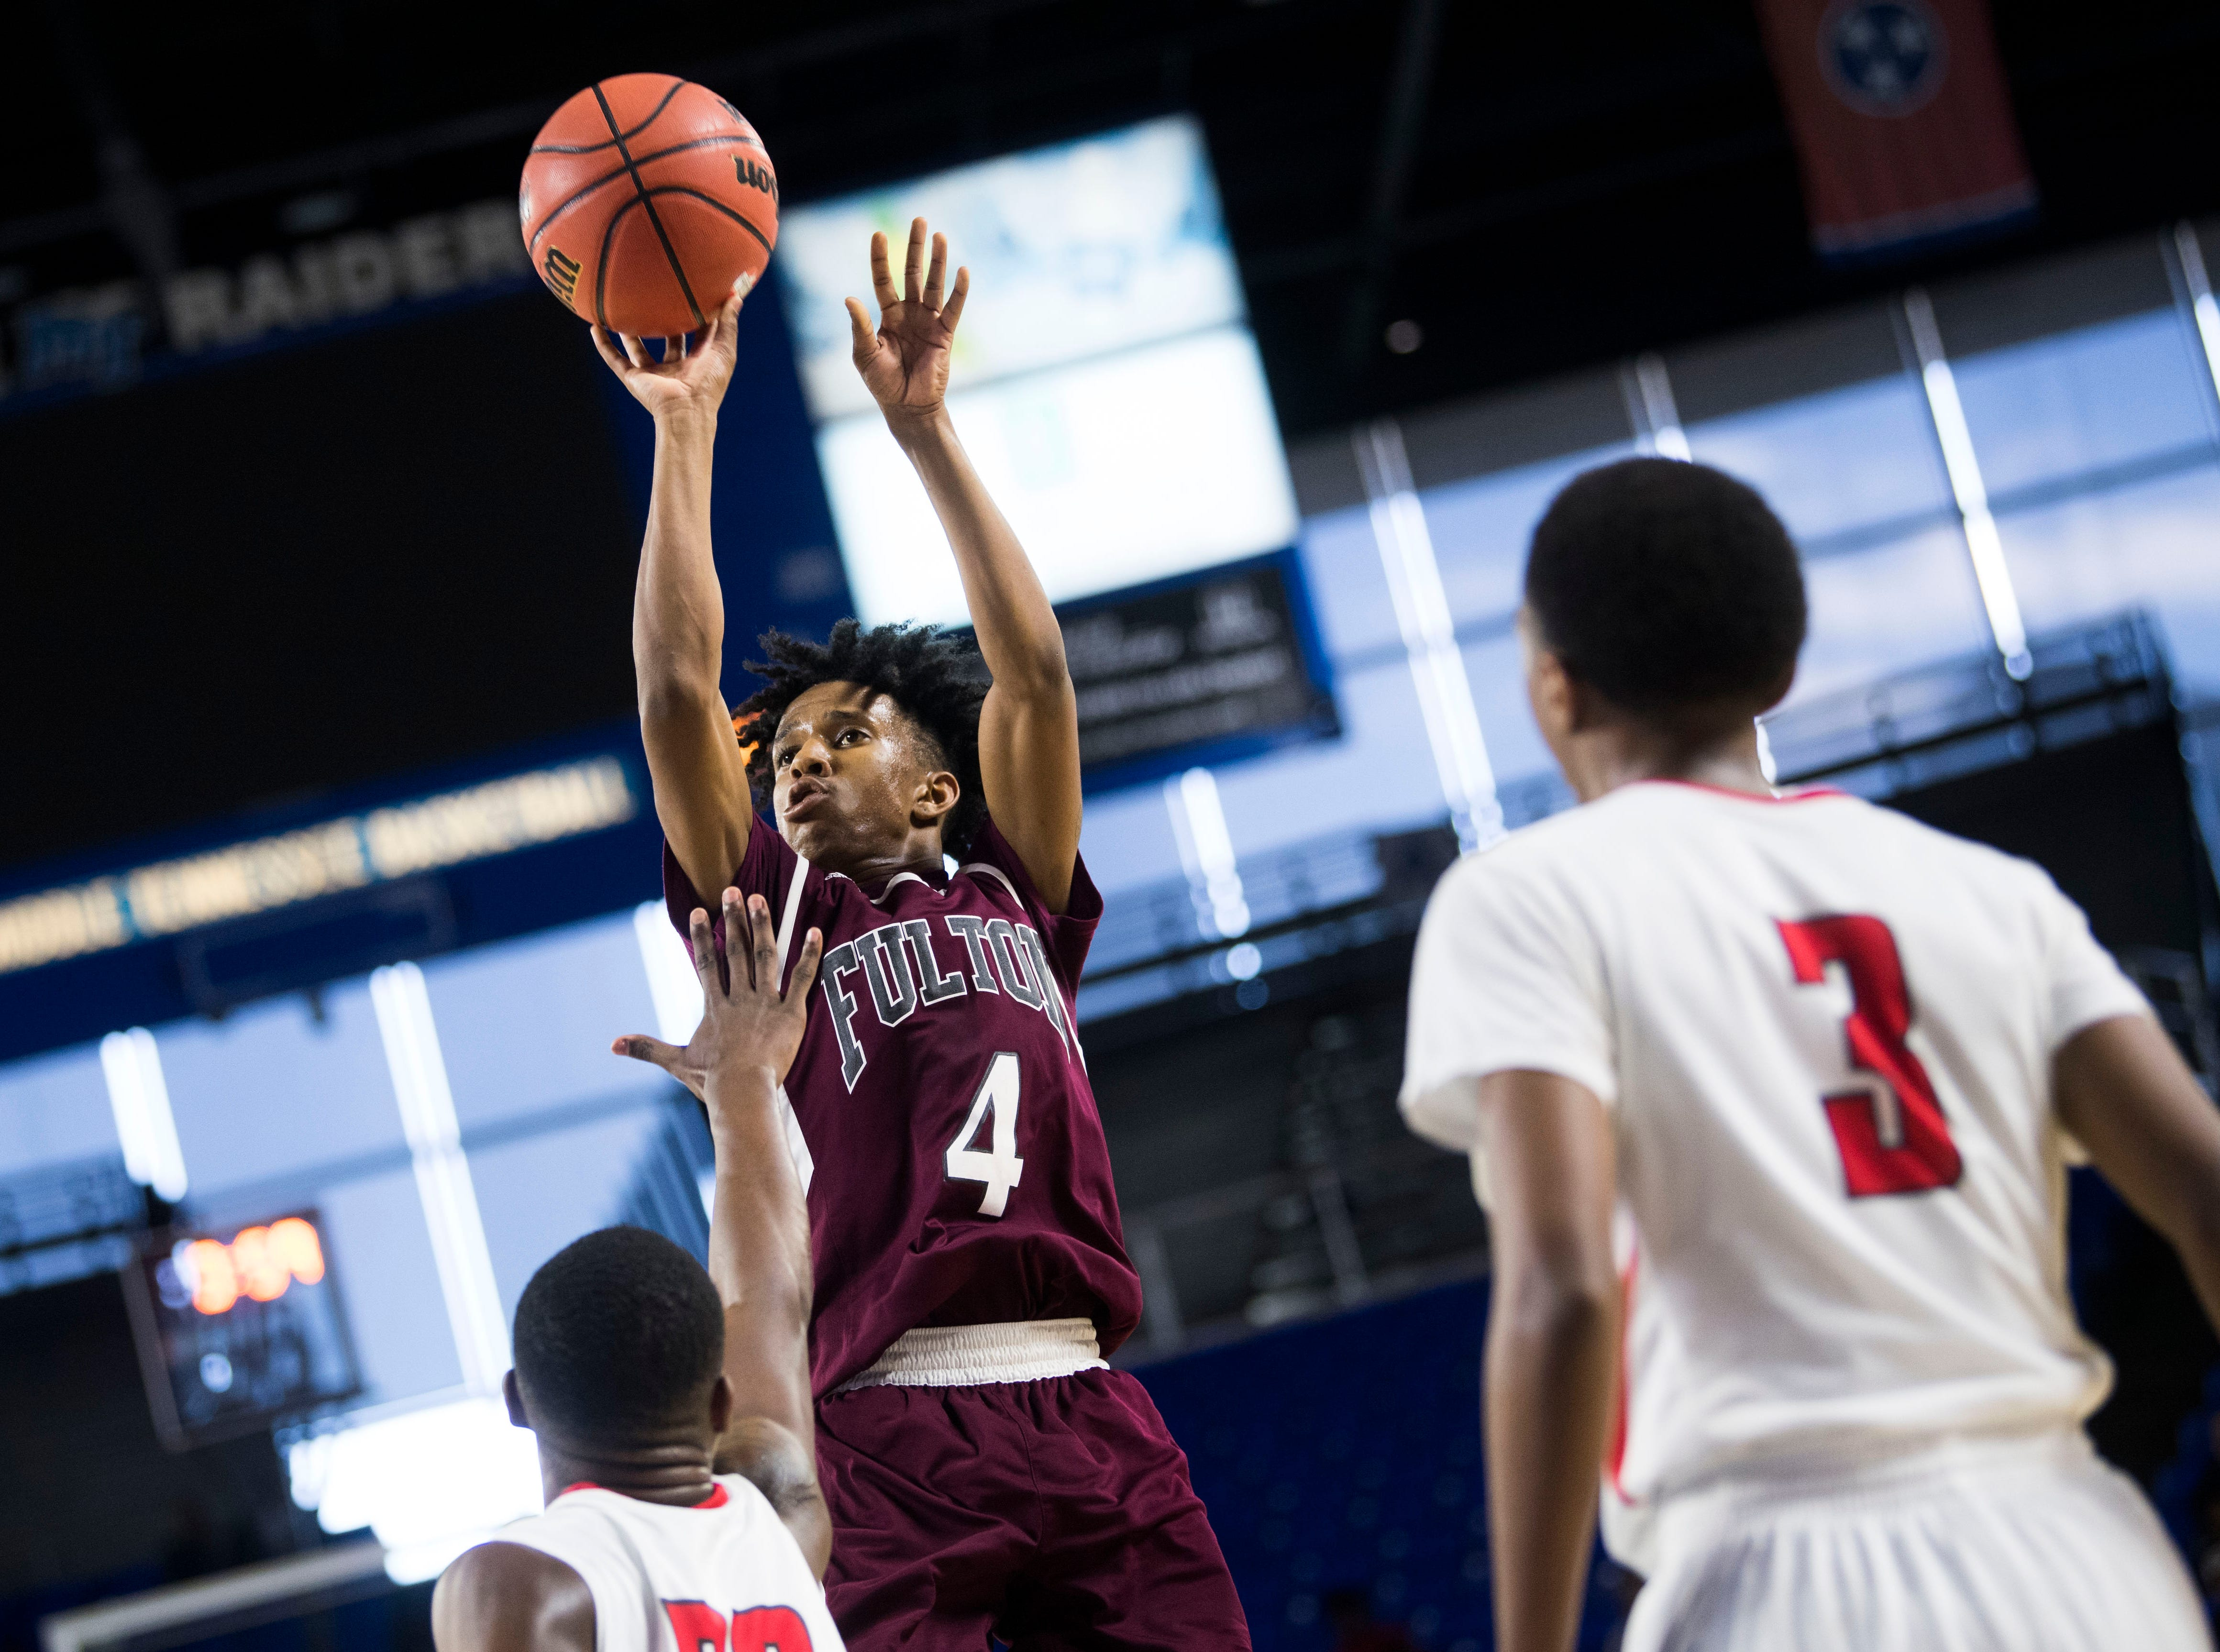 Fulton's Edward Lacy (4) takes a shot during a TSSAA AA state semifinal game between East Nashville and Fulton at the Murphy Center in Murfreesboro, Friday, March 15, 2019. Fulton defeated East Nashville 66-55.